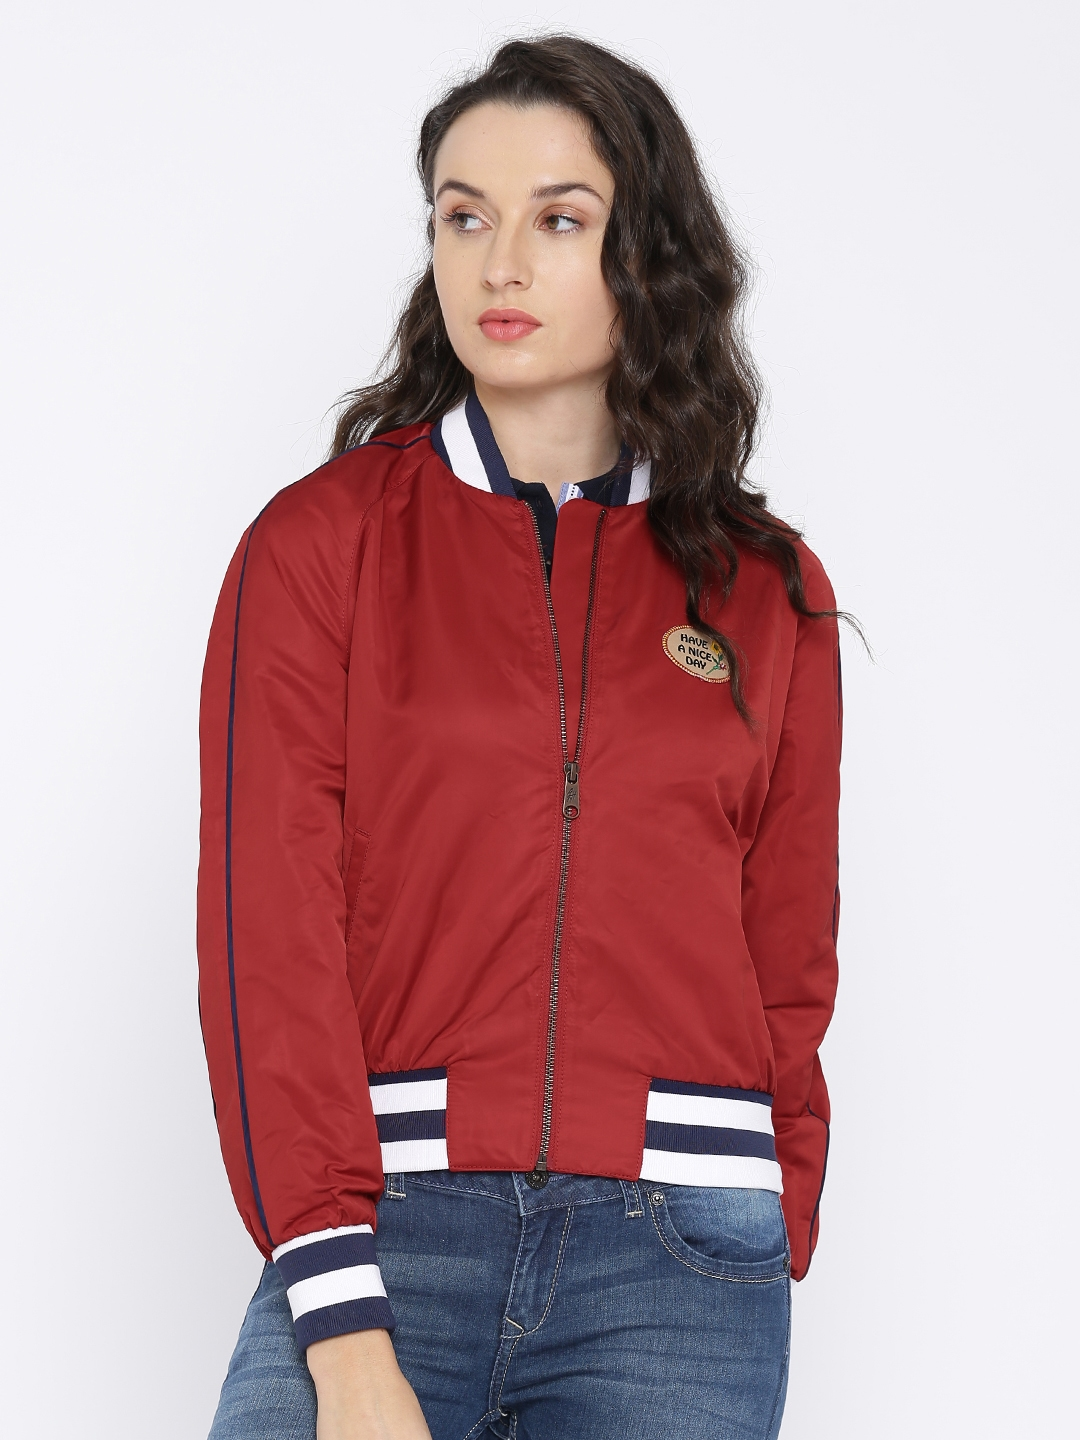 Buy Tommy Hilfiger Women Red Solid Bomber Jackets For Women